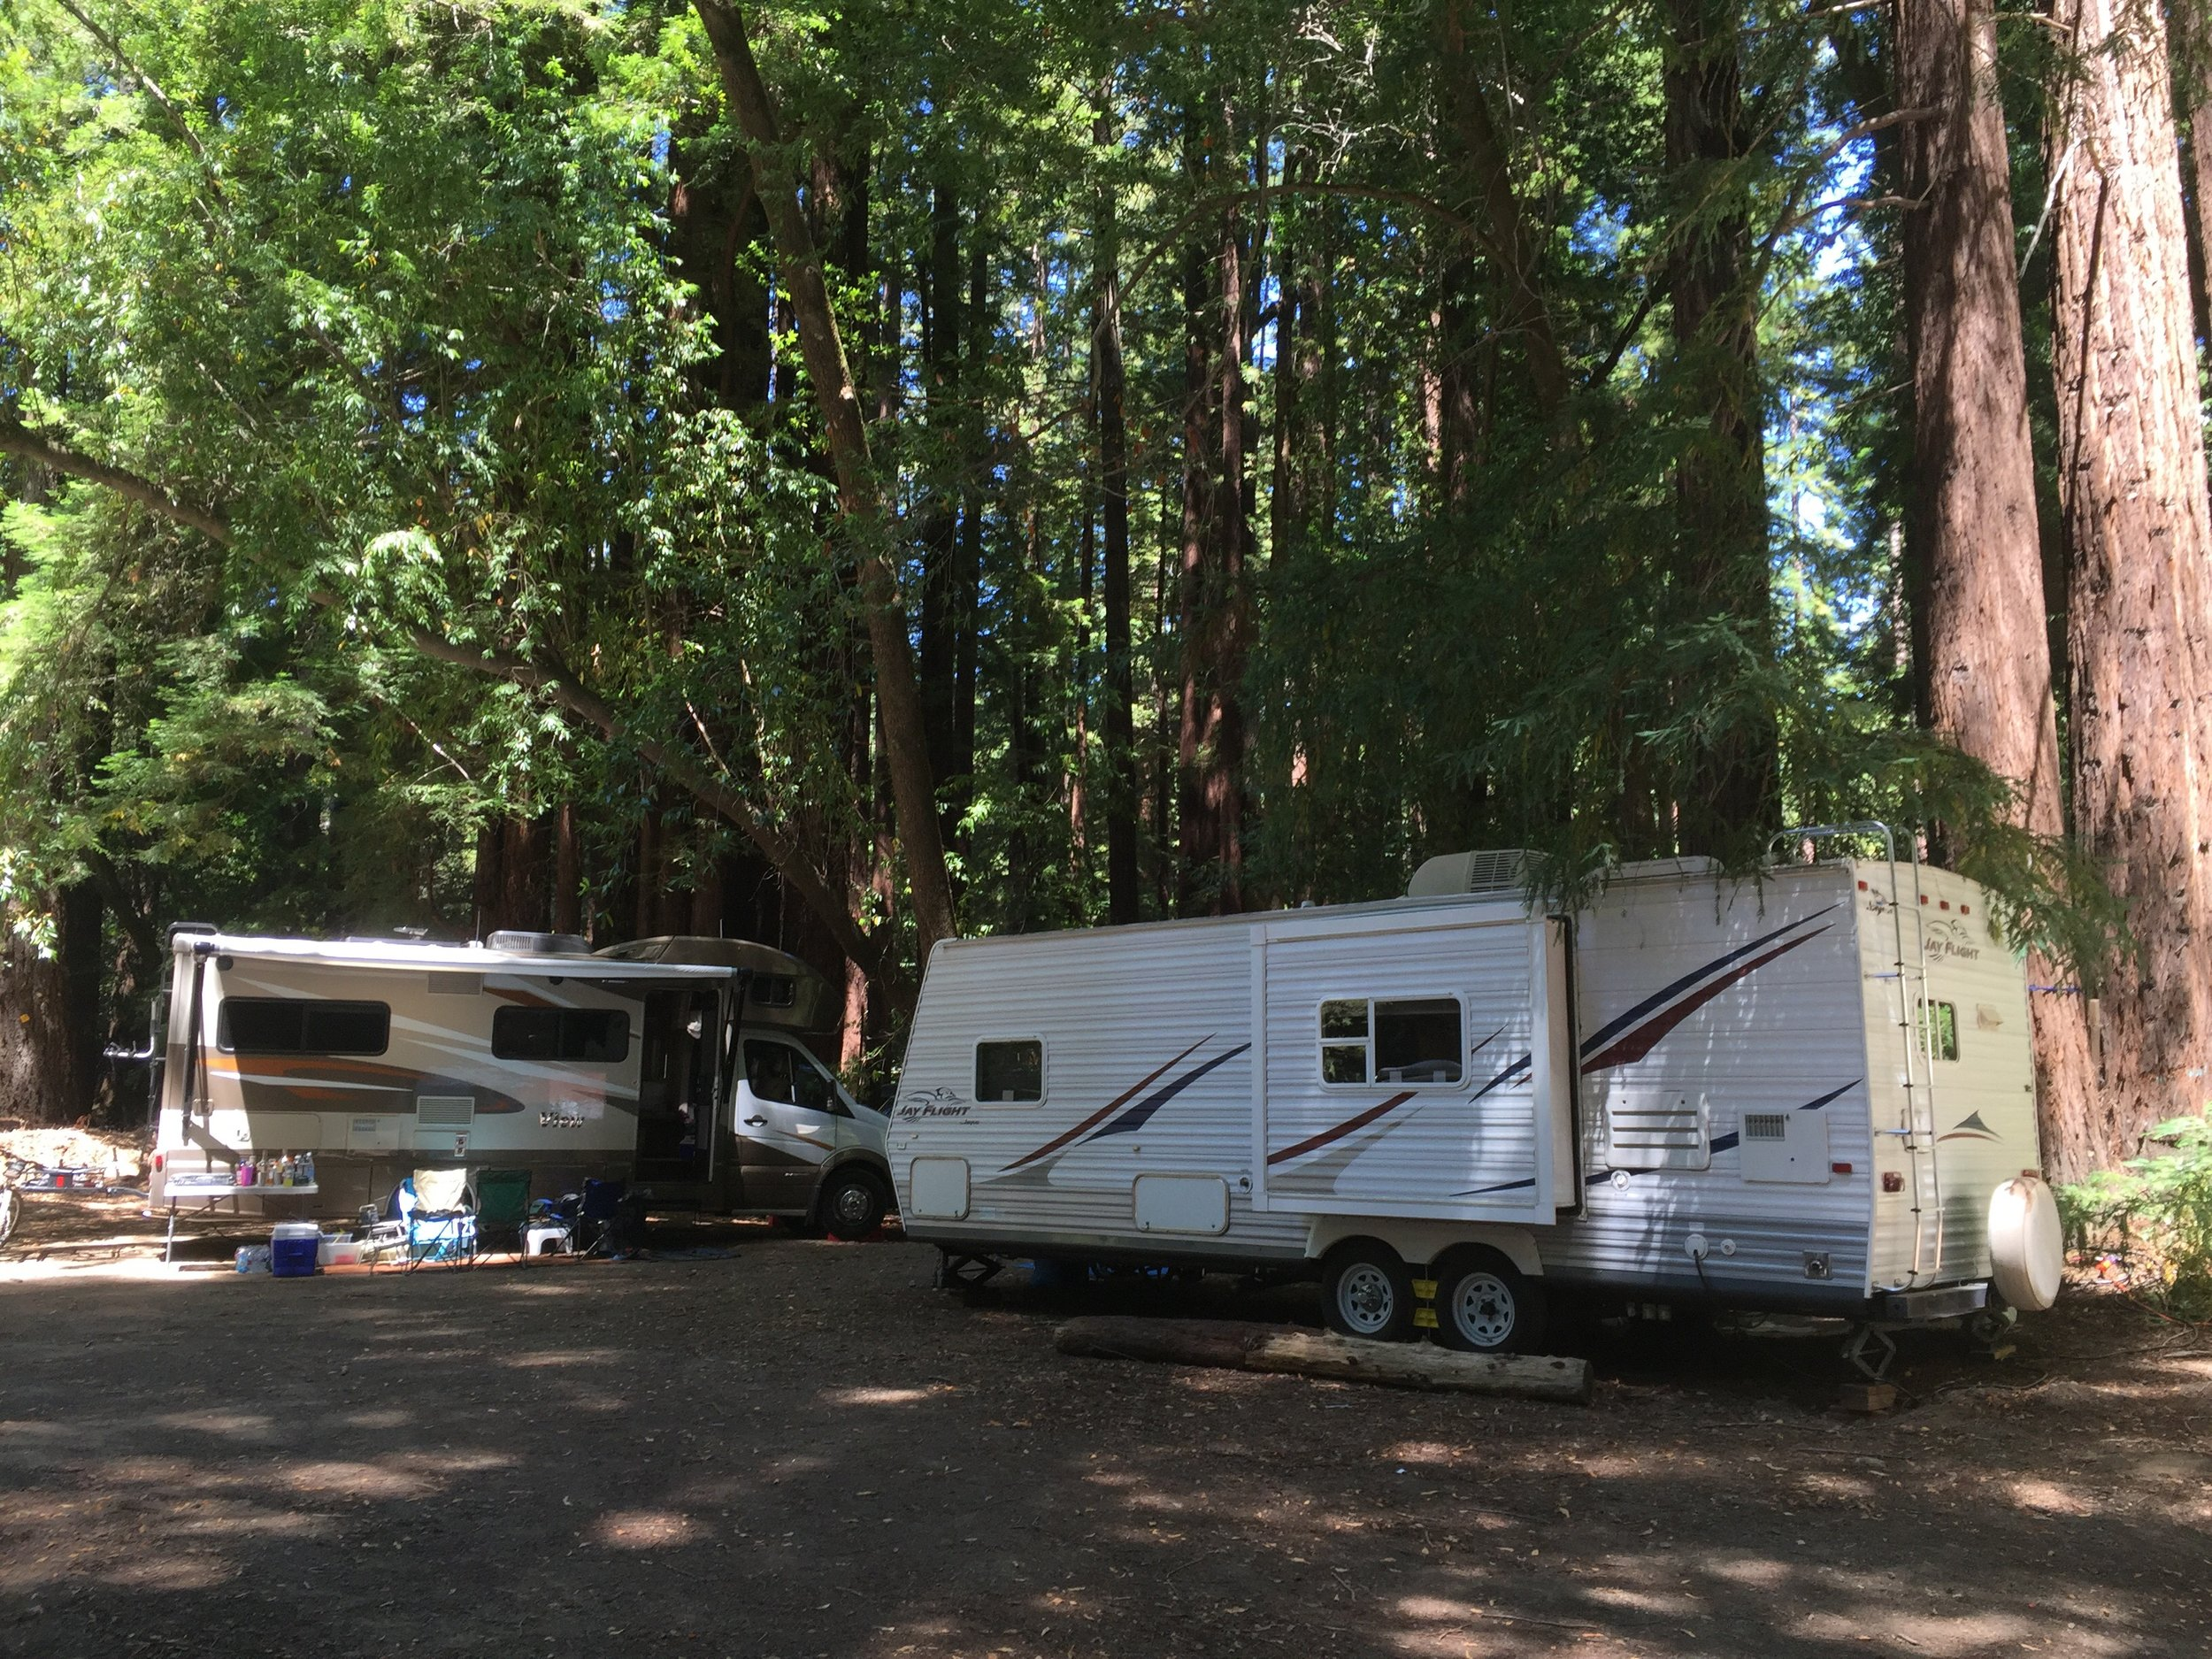 RV - Navarro has an RV zone with 16 sites. 8 include electricity hookups.$105.00 per RV